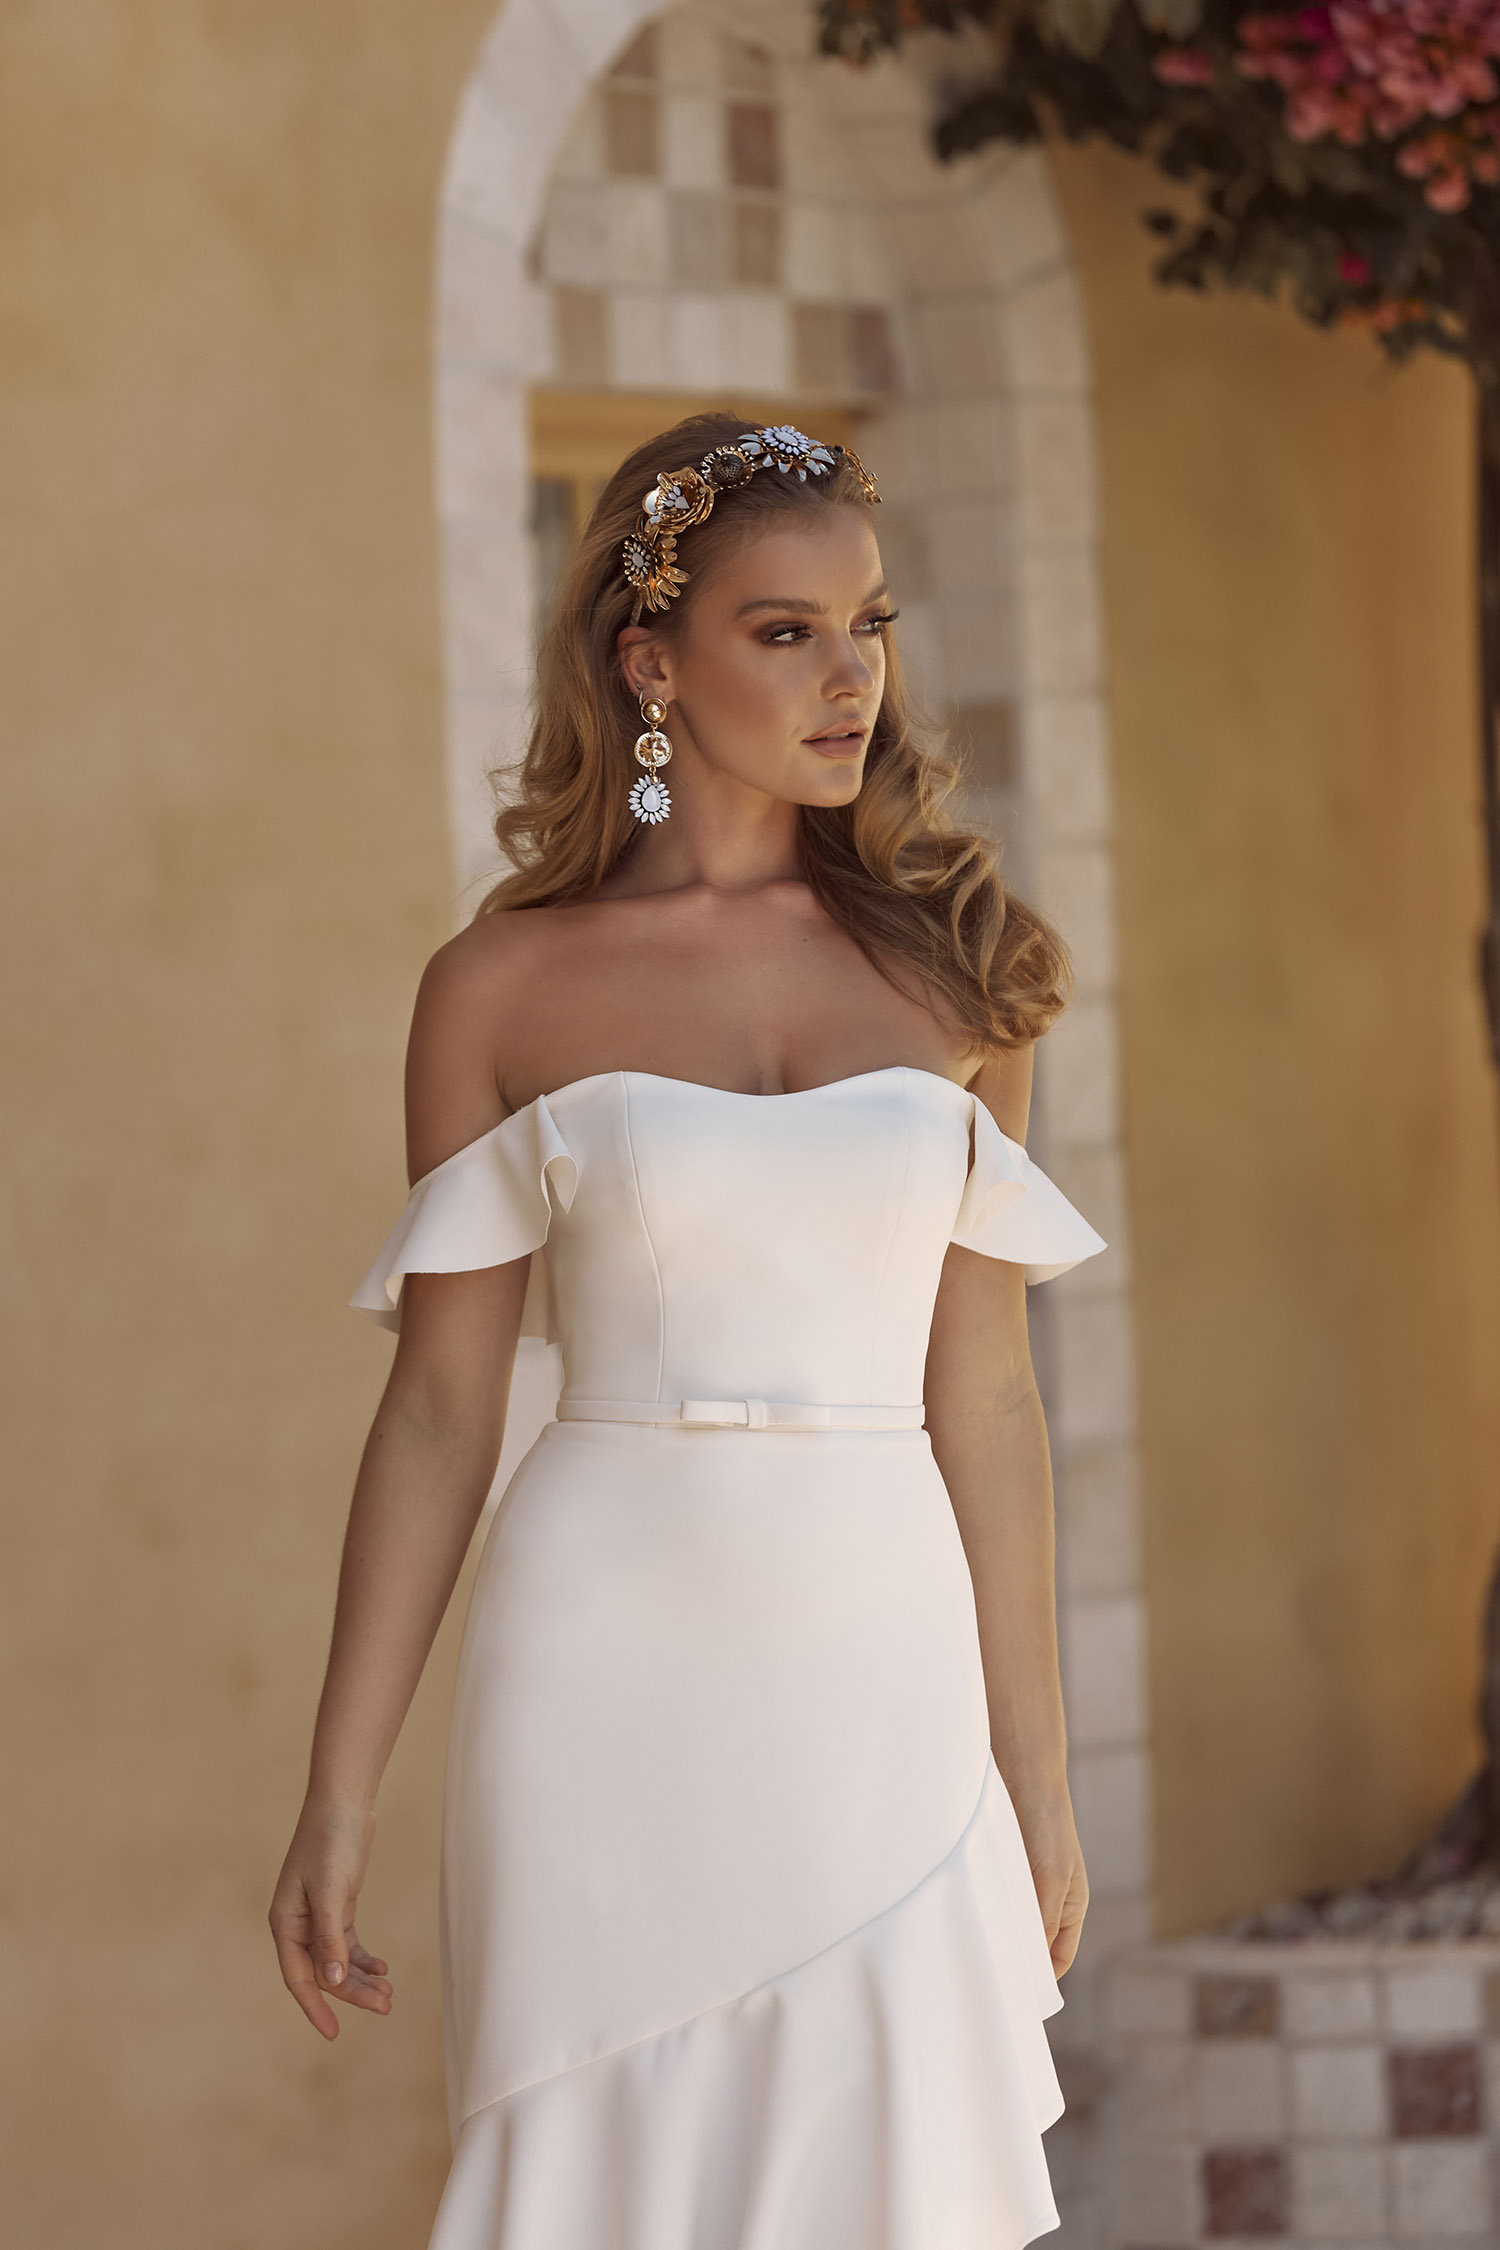 Blake Ml18012 Hi Low Fit Flare Silhouette Semi Sweetheart Neckline With Detachable Belt And Flutter Sleeves Included With Zip Closure Finish Wedding Dress Madi Lane Bridal5